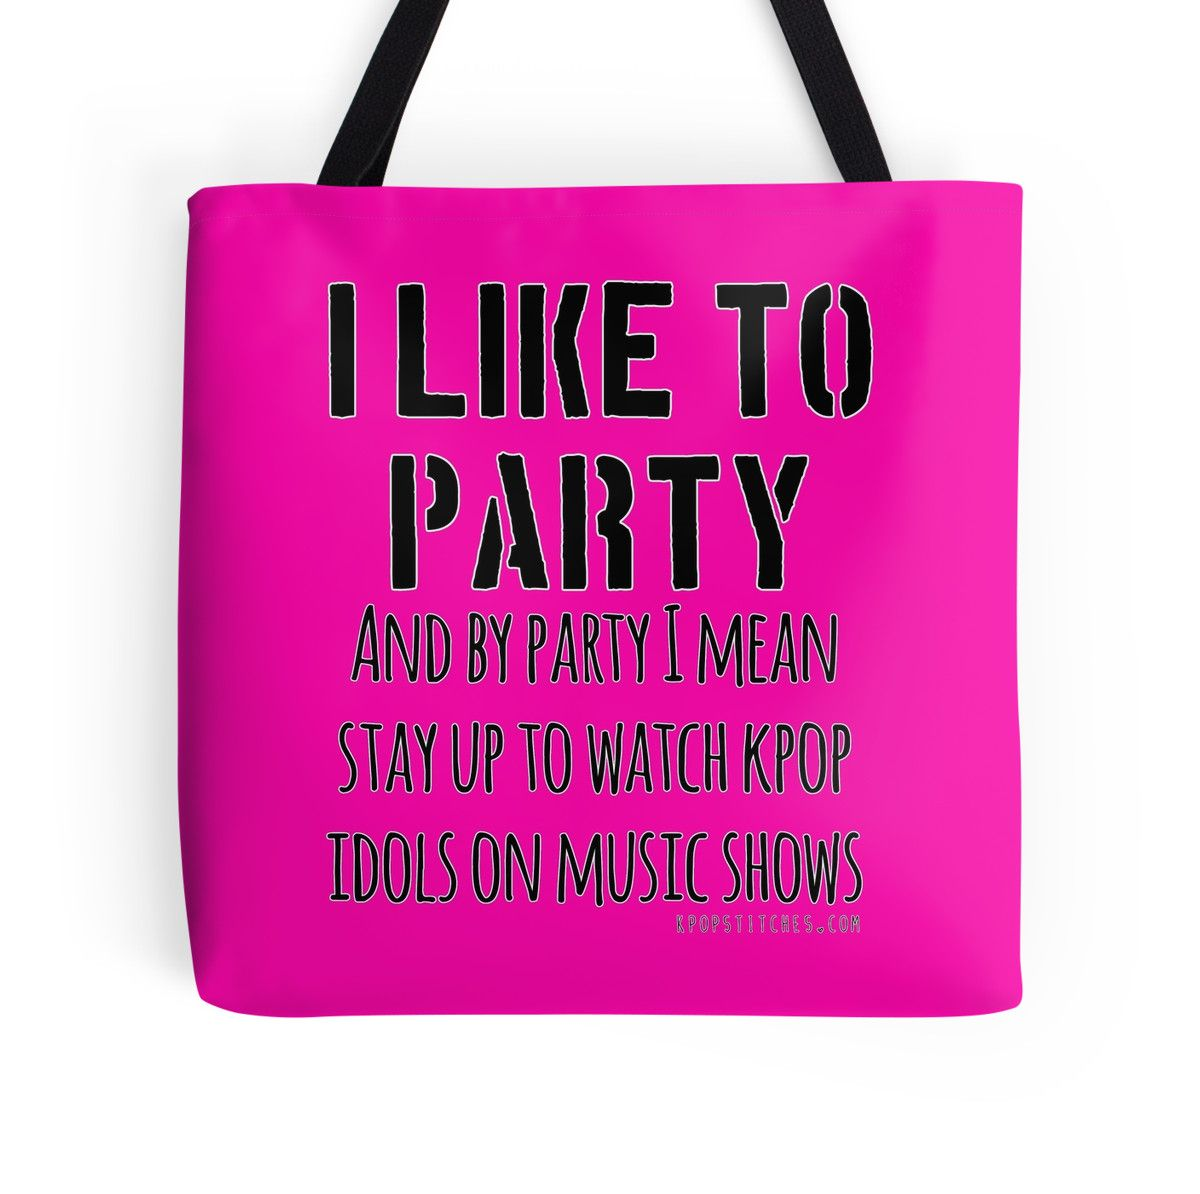 Kpop Idols On Music Shows Is A Party By Dubukat Kpop Idol Kpop Idol